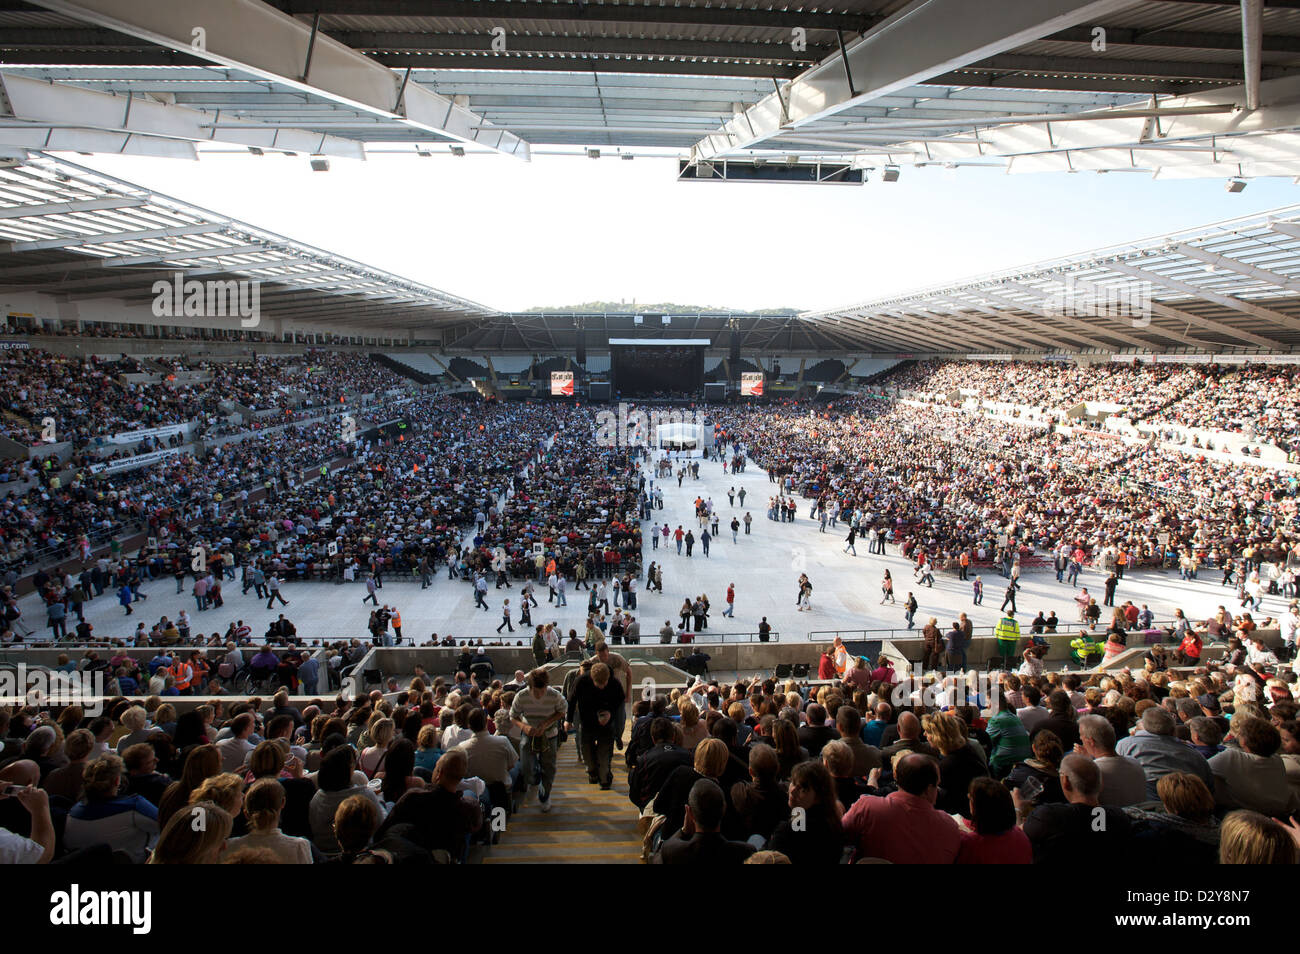 A packed Liberty Stadium waits for music Legend Elton John to take the stage. - Stock Image